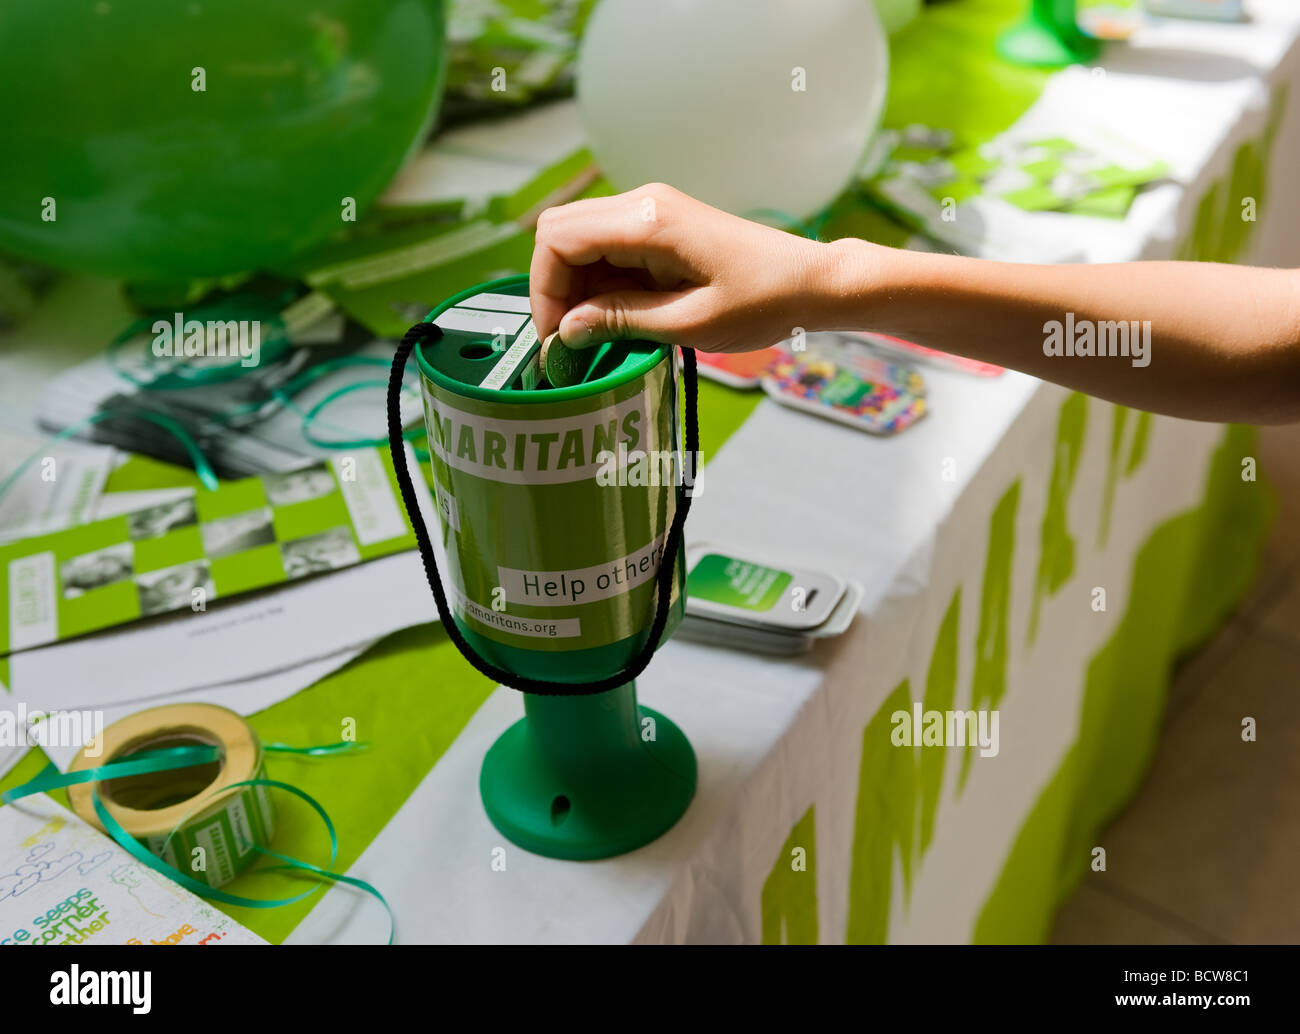 A person donating a pound coin to the Samaritans charity. - Stock Image